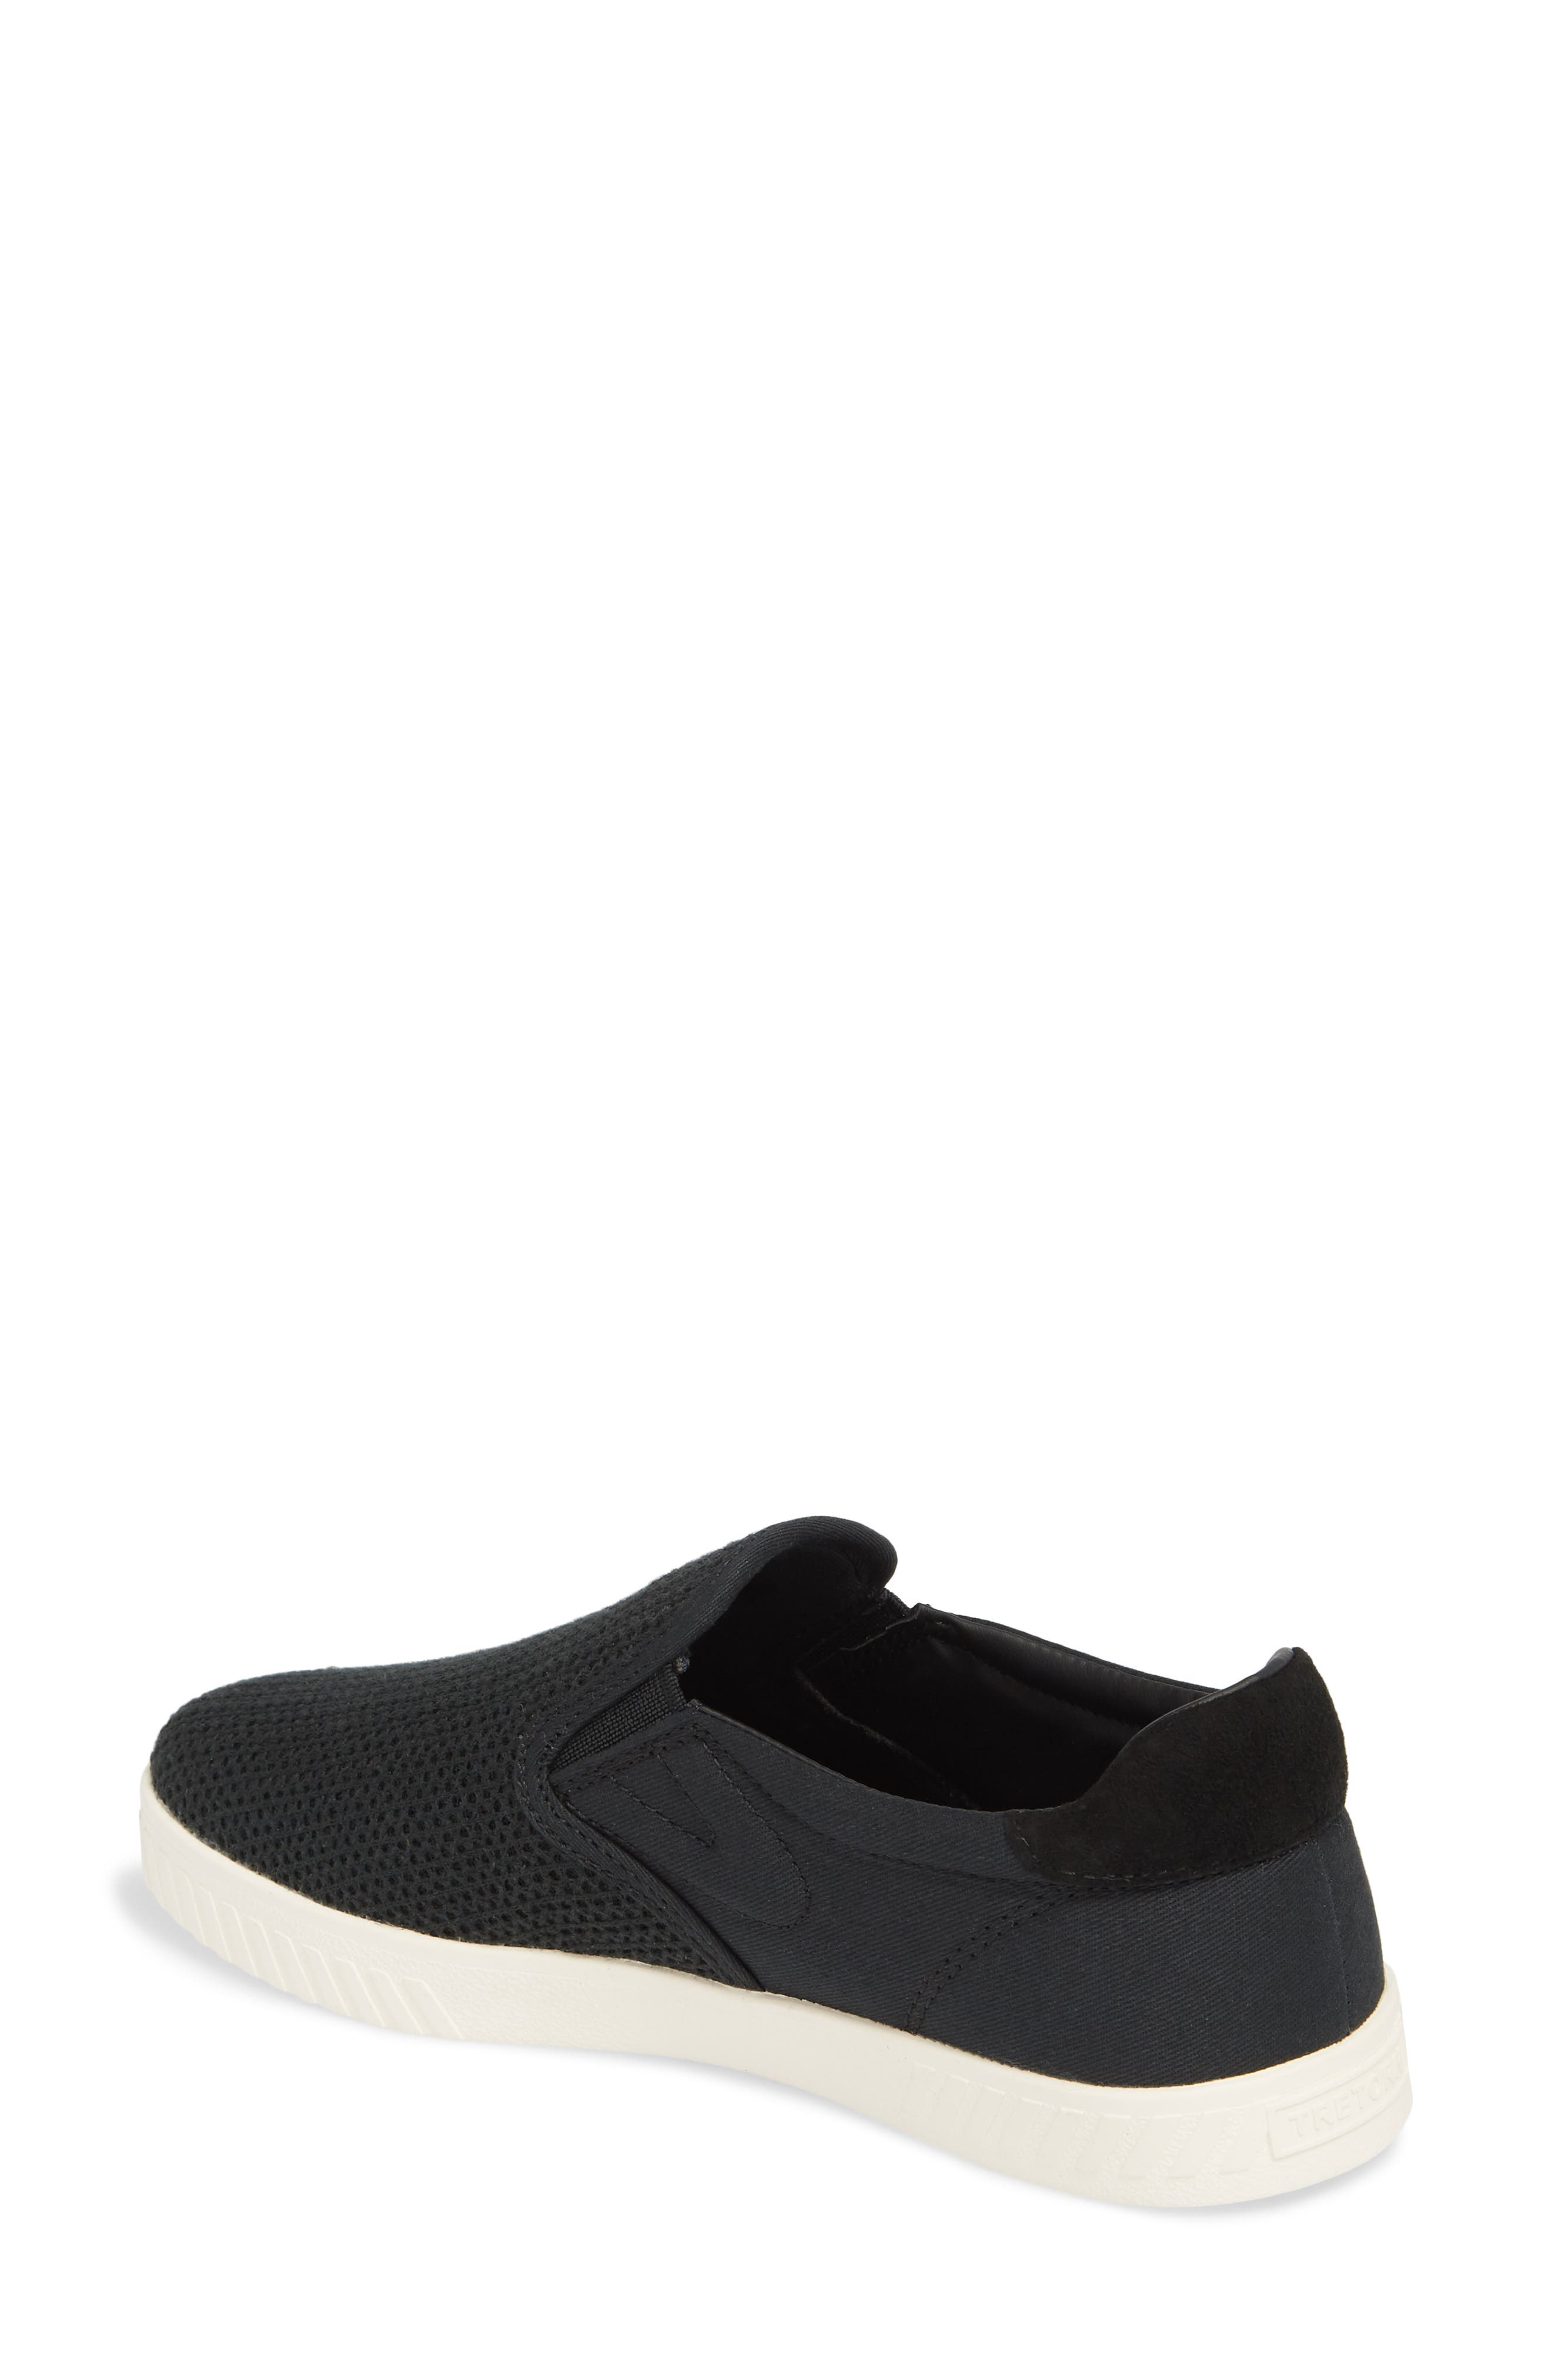 Cruz Mesh Slip-On Sneaker,                             Alternate thumbnail 4, color,